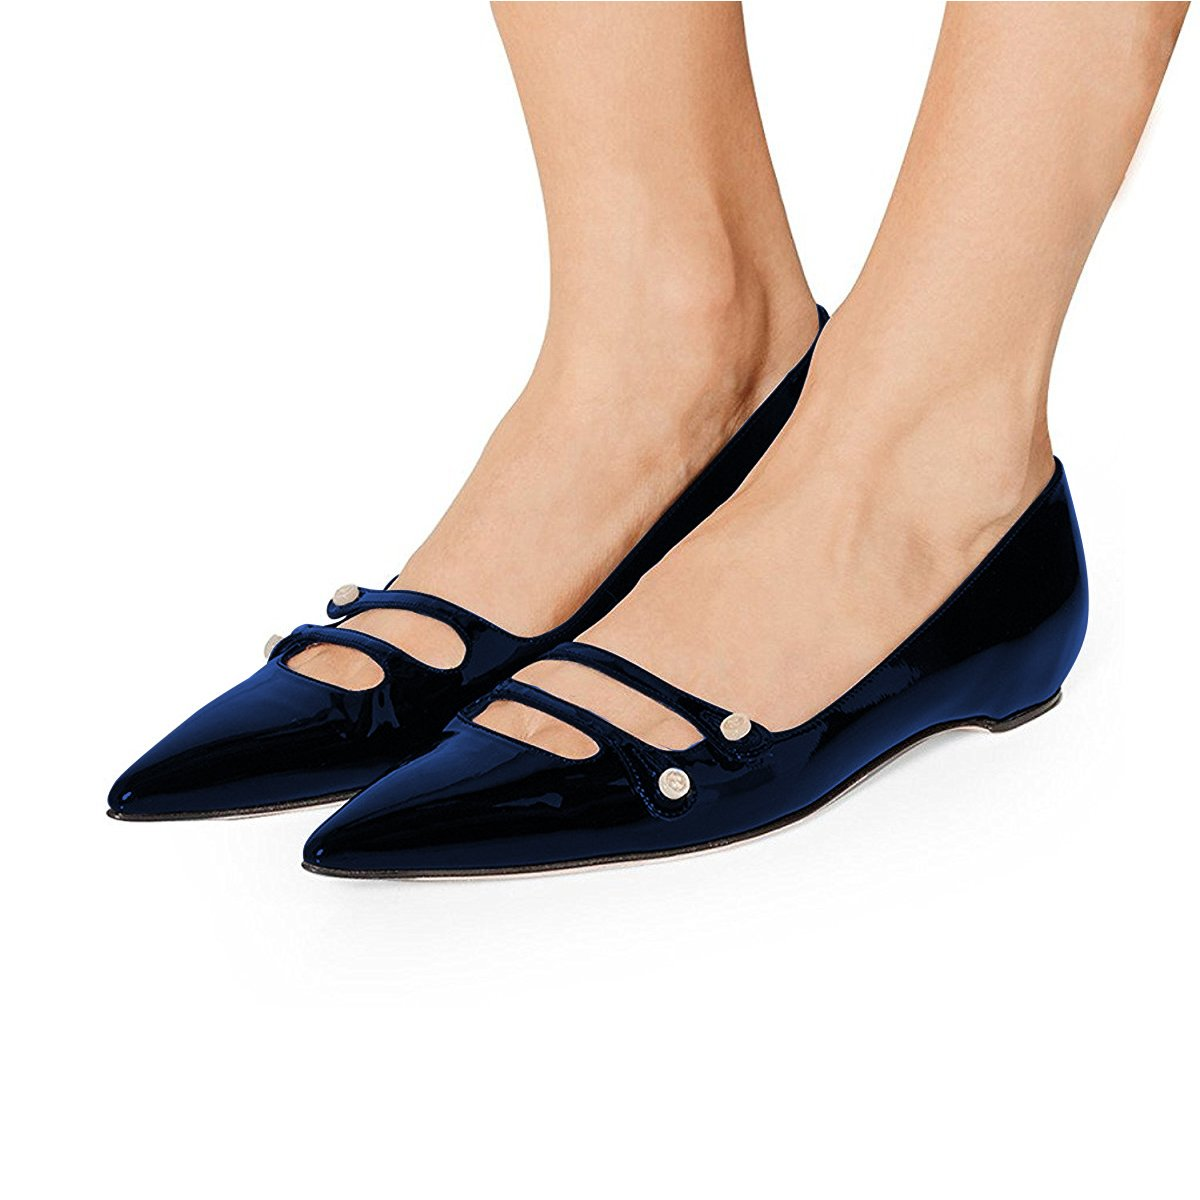 YDN Women Pointed Toe Slip on Flats Hidden Low Heels Pumps Comfort Shoes with Straps B077G7BXWC 13 M US|Navy